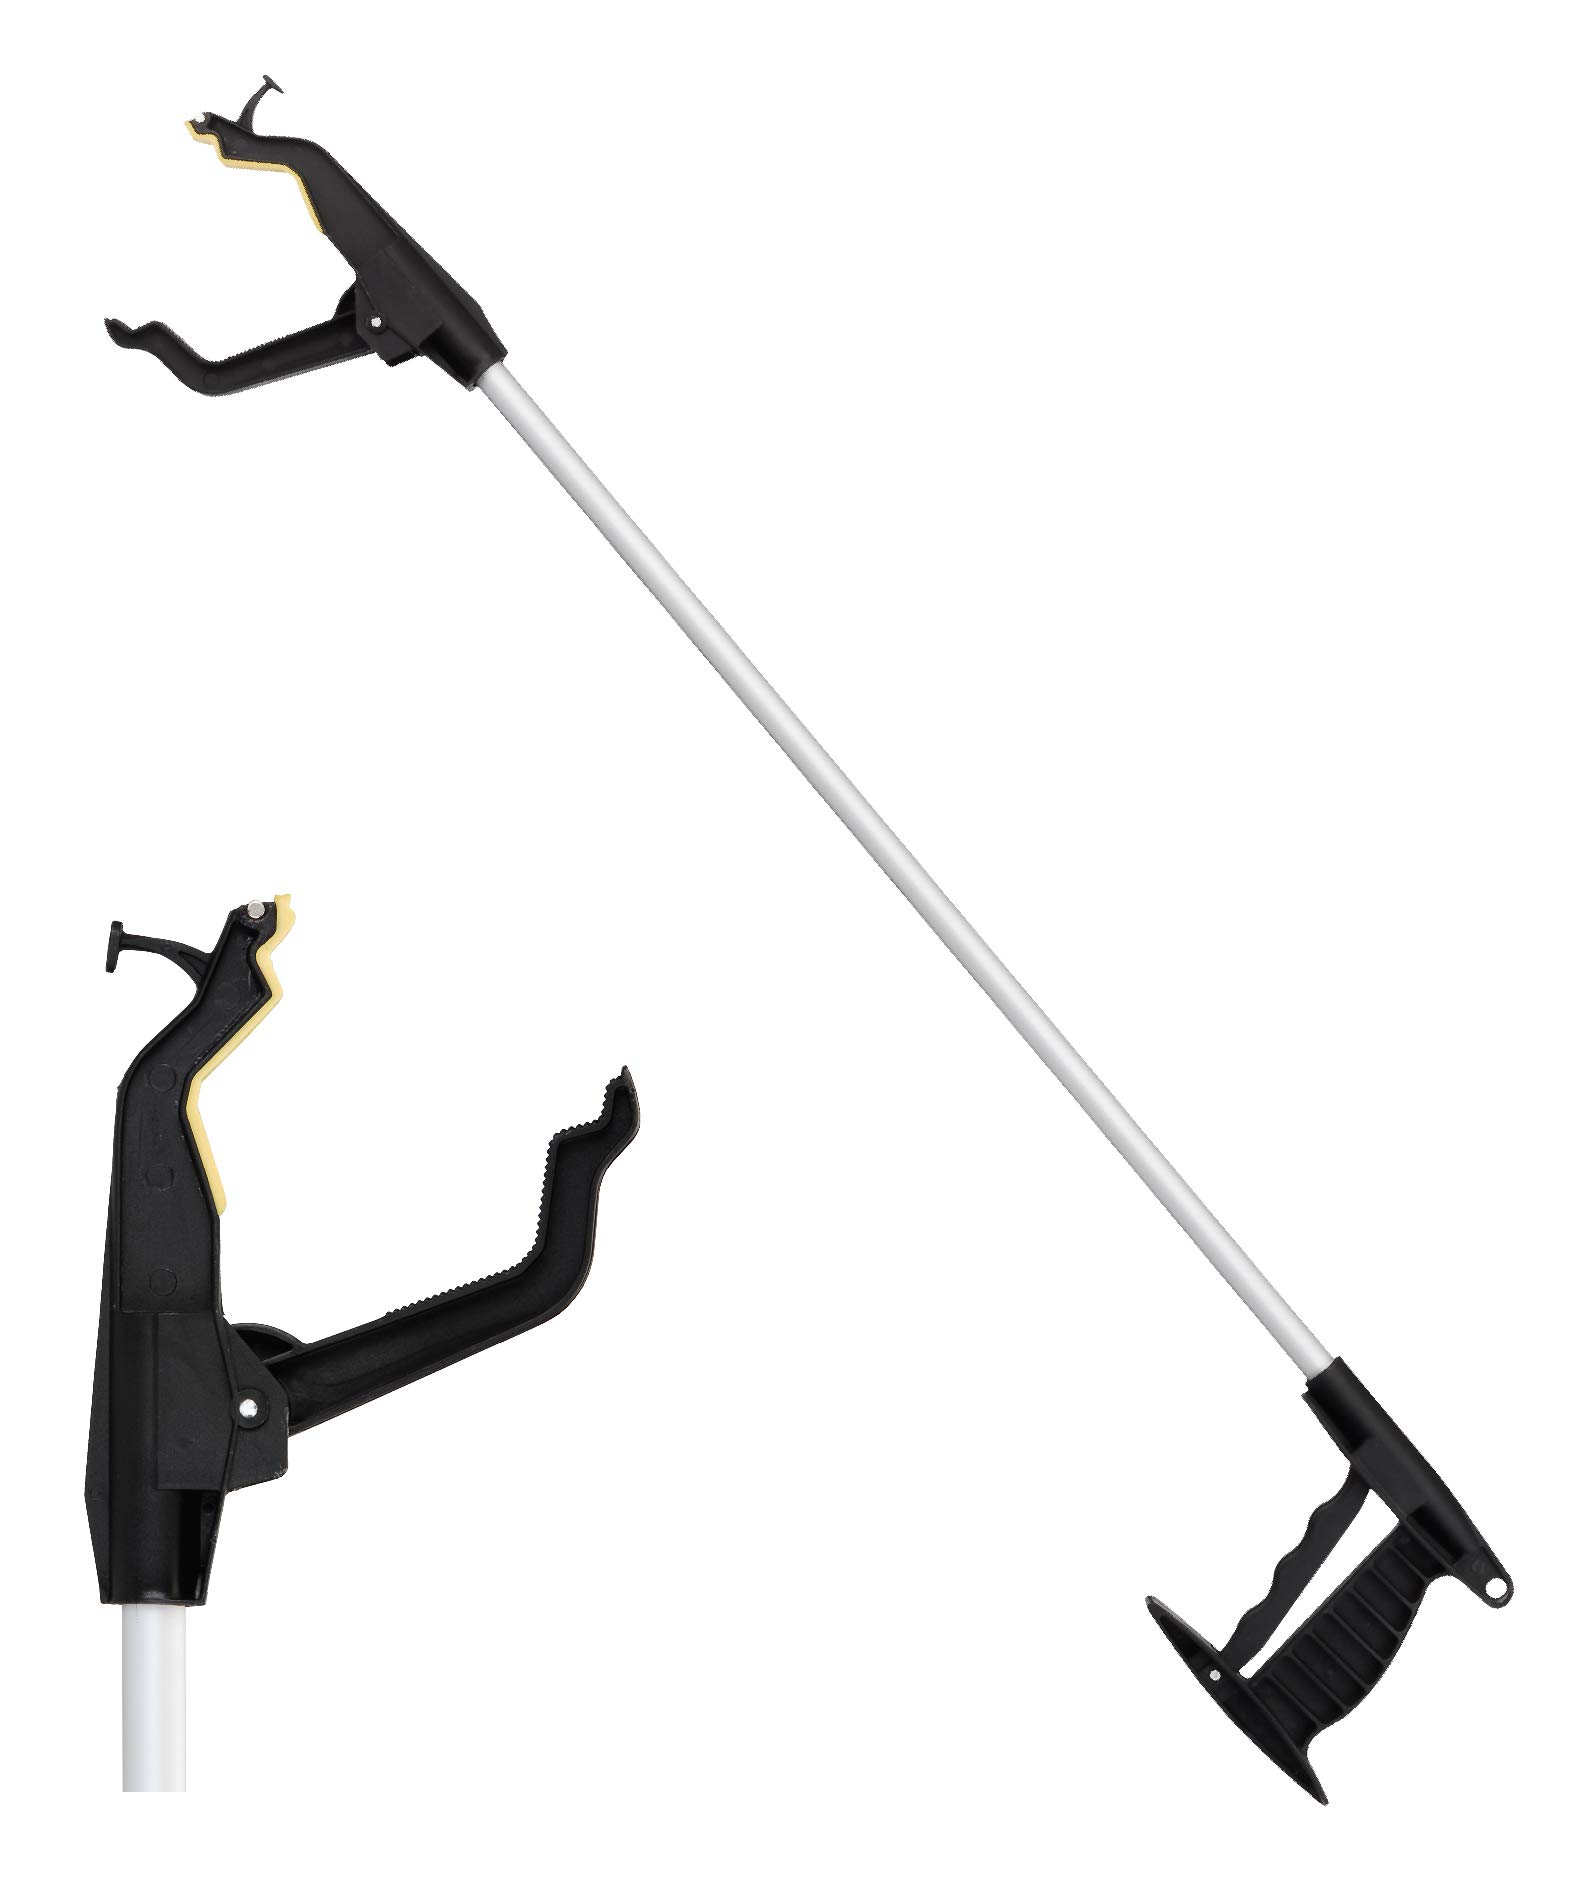 NOVA 32'' Long Reacher, Lightweight Grabber with Wide Gripper, Hook and Magnetic Tip, Rotating Easy Grip Handle by NOVA Medical Products